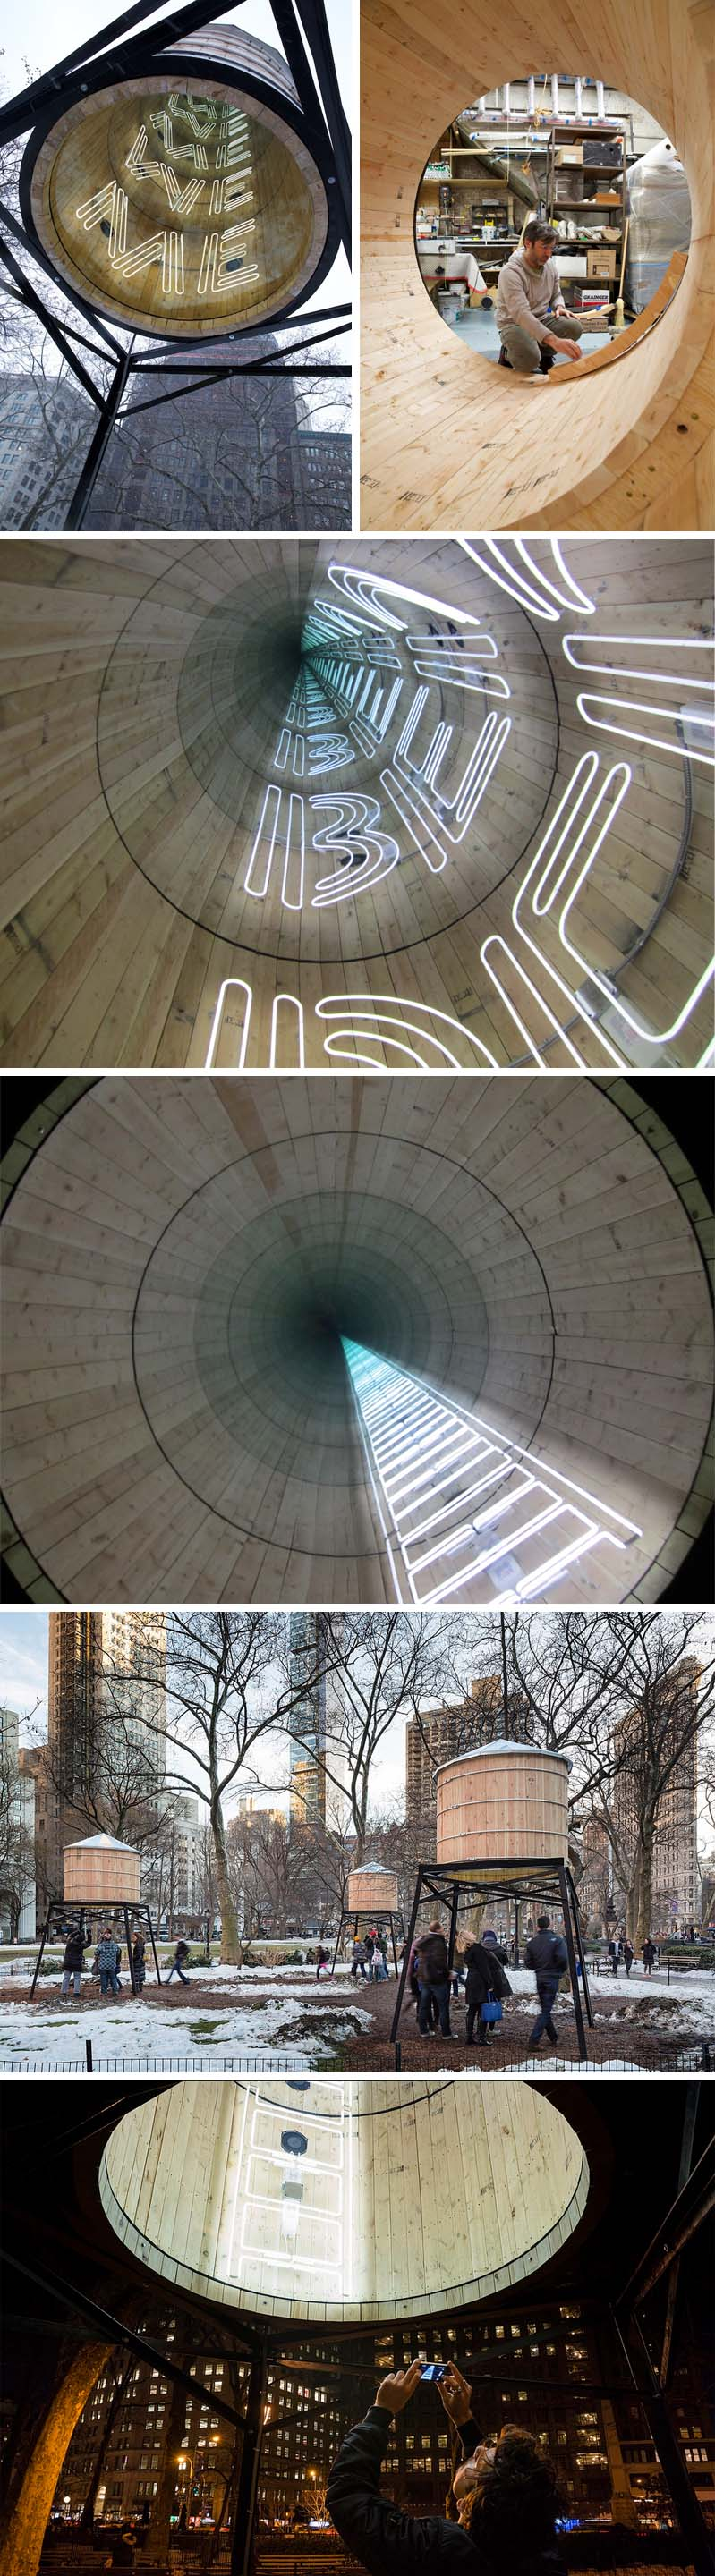 'This Land is Your Land' site-specific light installation by Iván Navarro in NYC's Madison Square Park